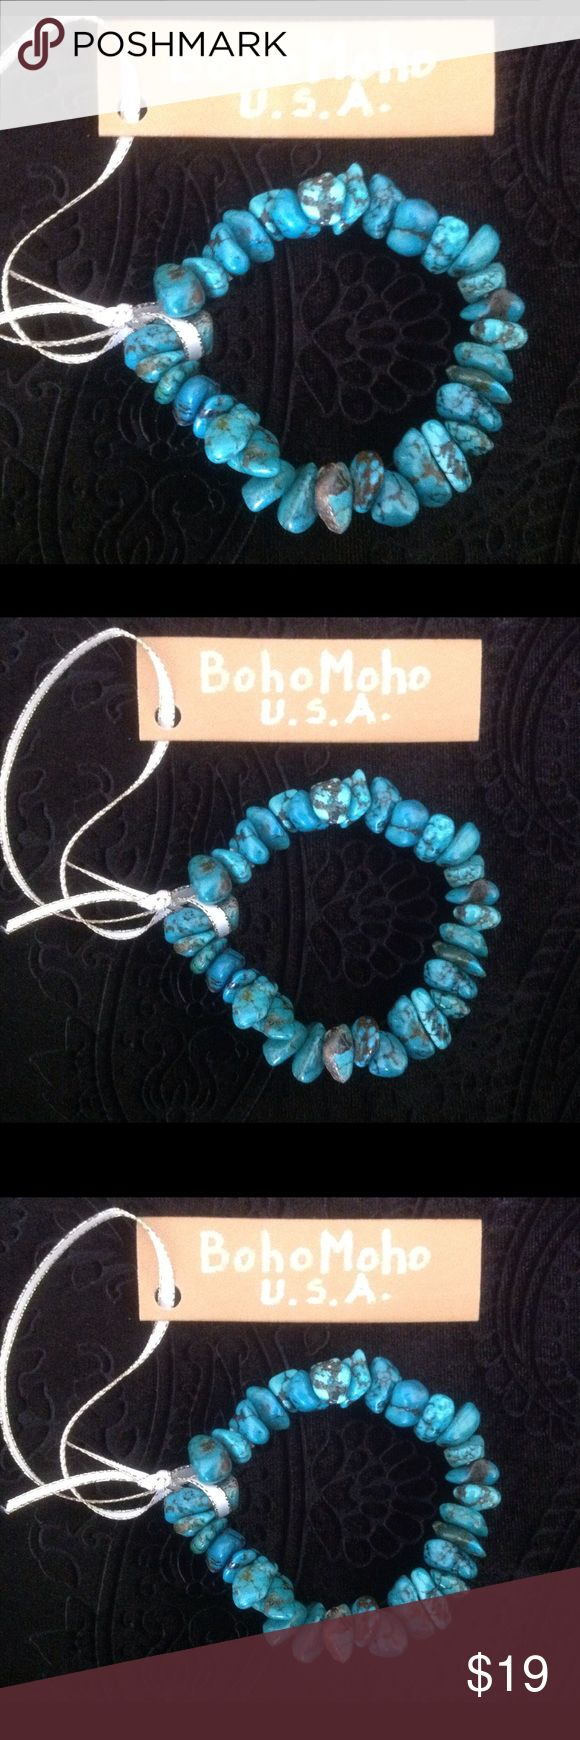 Turquoise natural stone bracelet Meaning and uses of turquoise is known to be the oldest stone in history as talisman of kings, shamans and warriors. This stone is used for protection and healing, especially of the eyes! This bracelet is stretch so easily fitting everyone, and it's really beautiful! BohoMoho Jewelry Bracelets